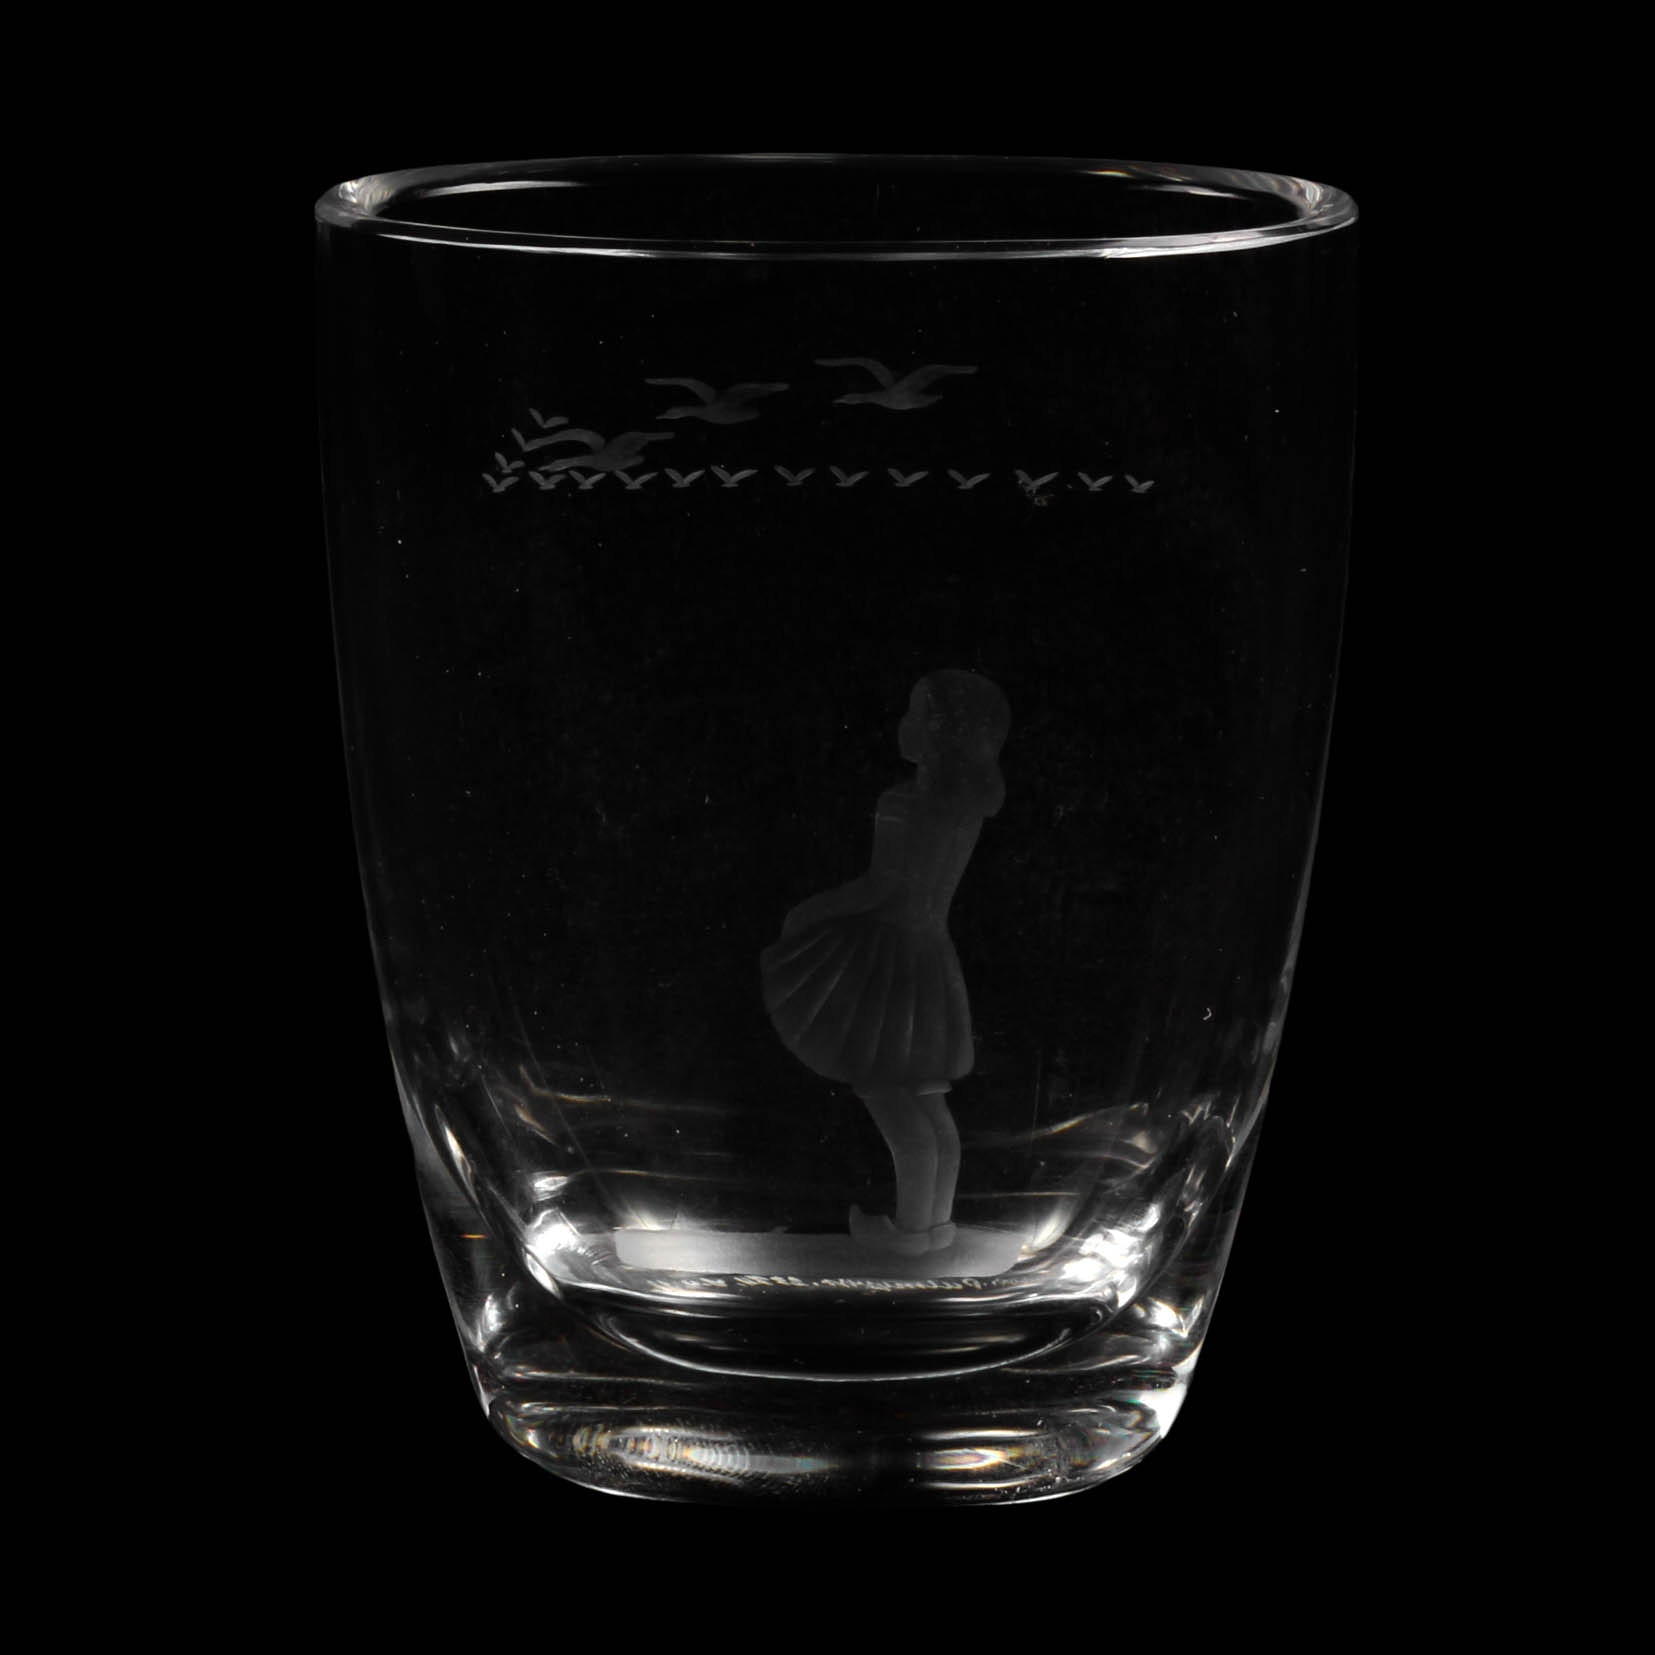 Orrefors Girl With Seagulls Etched Crystal Vase